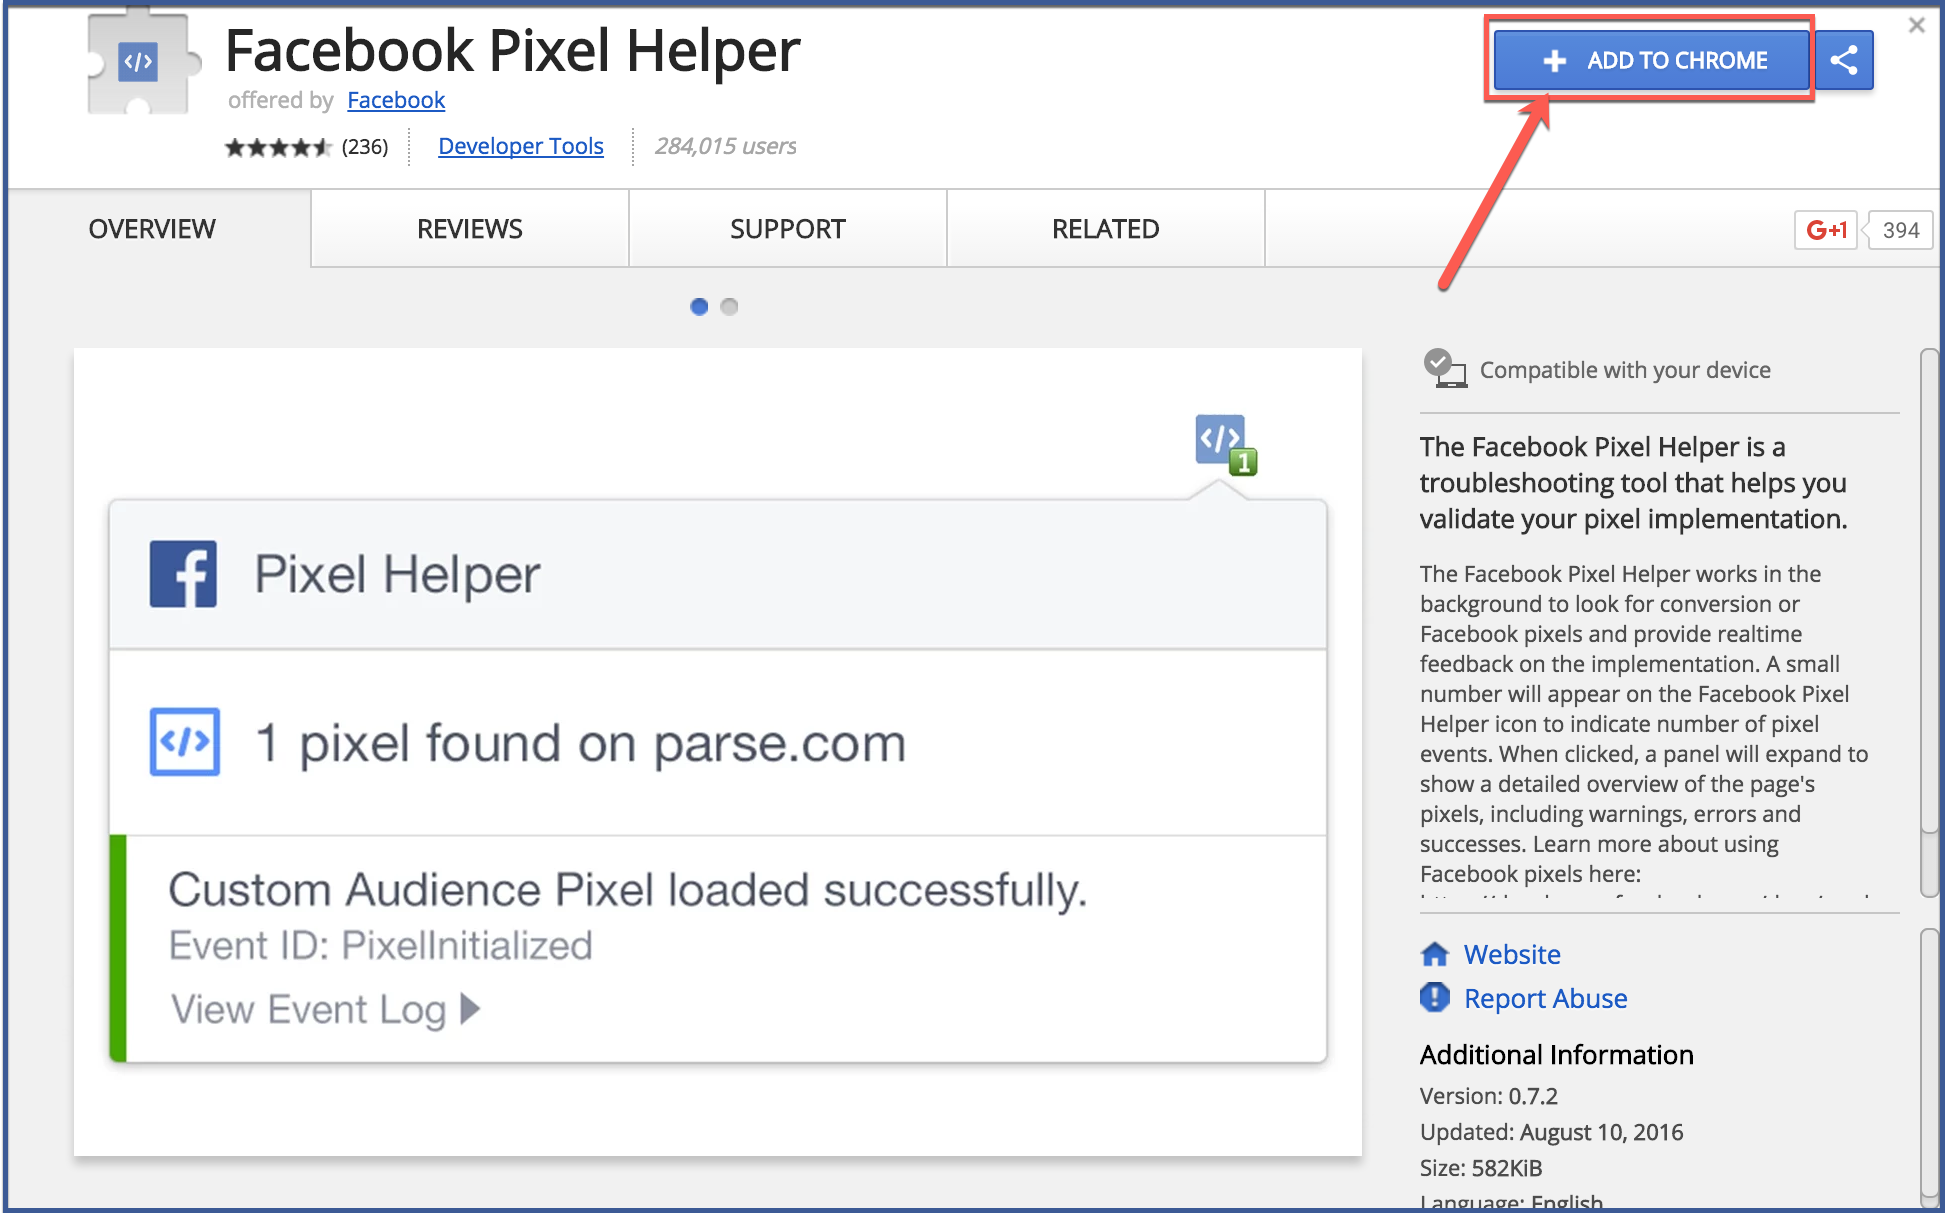 how-to-install-the-facebook-pixel-helper-chrome-extension